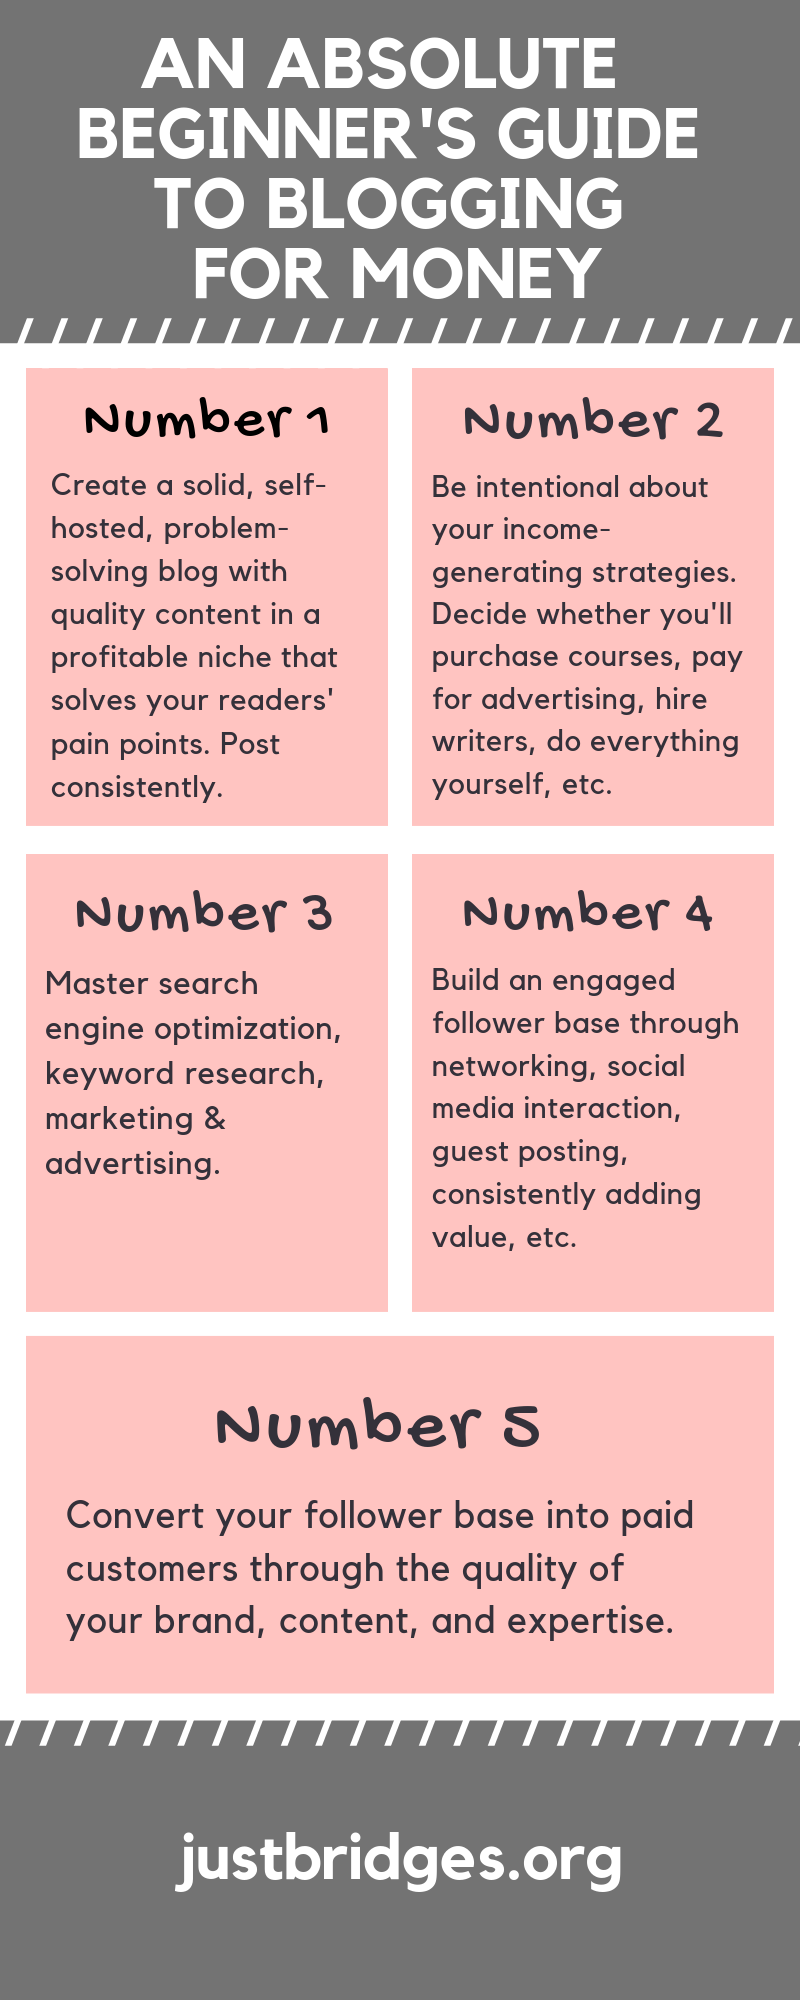 An Absolute Beginner's Guide To Blogging For Money, Not For Fun